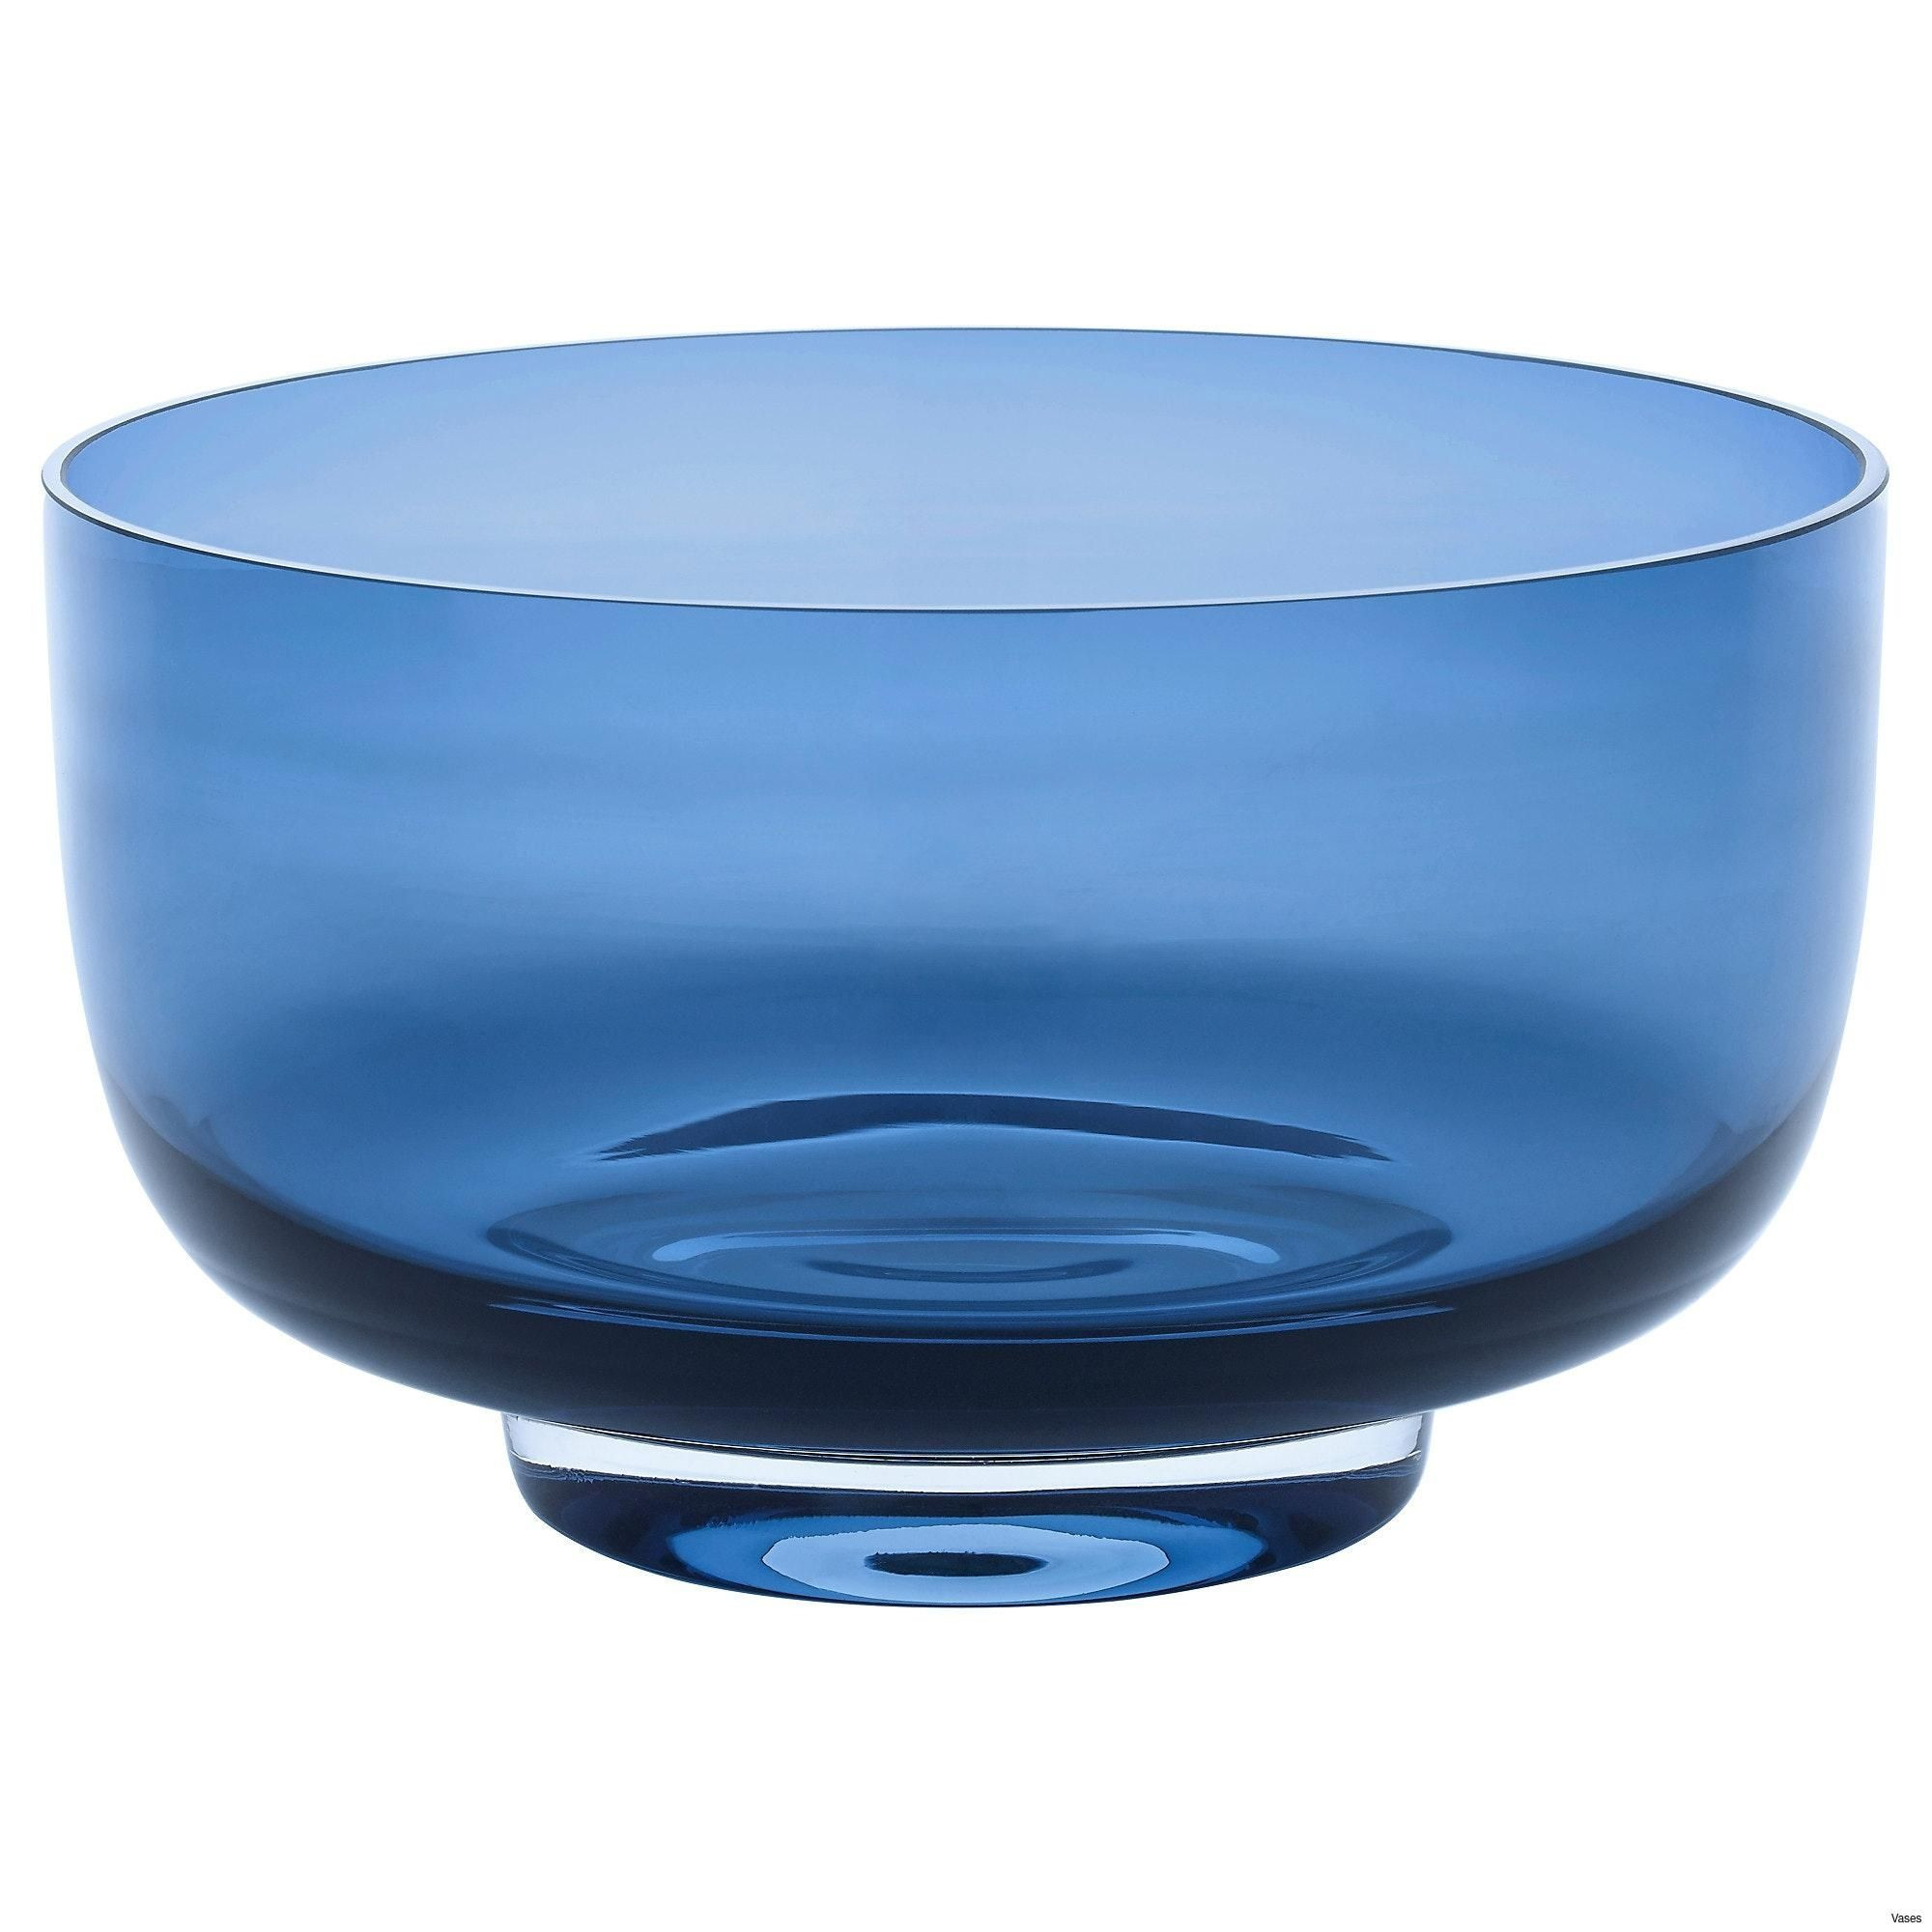 18 Trendy Mexican Blown Glass Vases 2021 free download mexican blown glass vases of 23 blue crystal vase the weekly world intended for decorative glass bowl new living room ikea vases awesome pe s5h